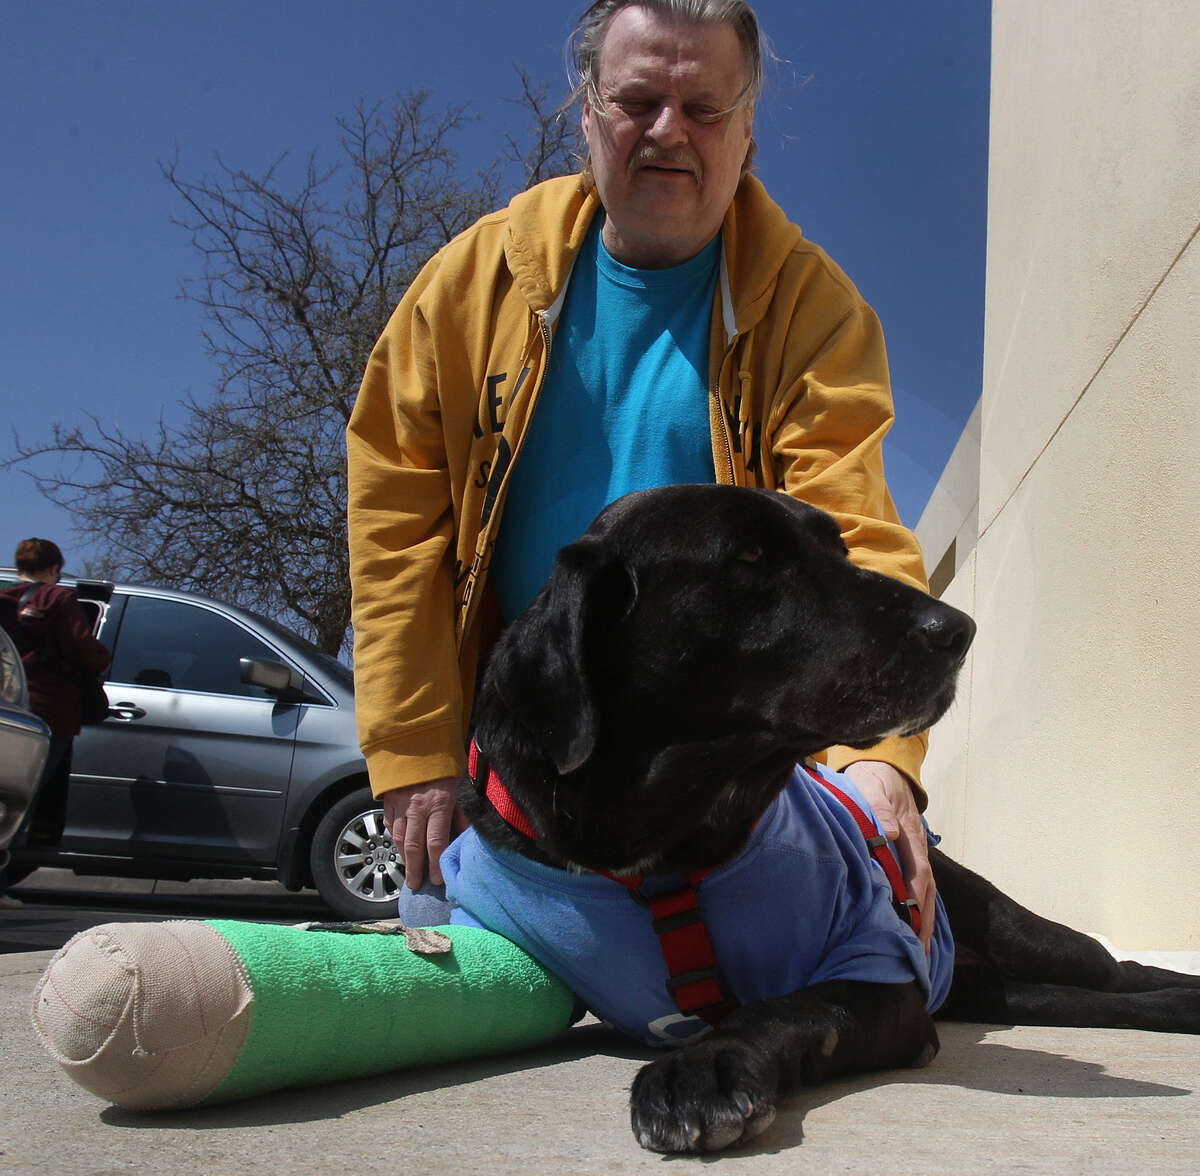 Ronald Zawacki-Maldonado pets Debbie outside South Texas Veterinary Specialists in San Antonio. The formerly stray dog then headed home to Zawacki-Maldonado's place in Eagle Pass, where she was hit by a car and injured in January.